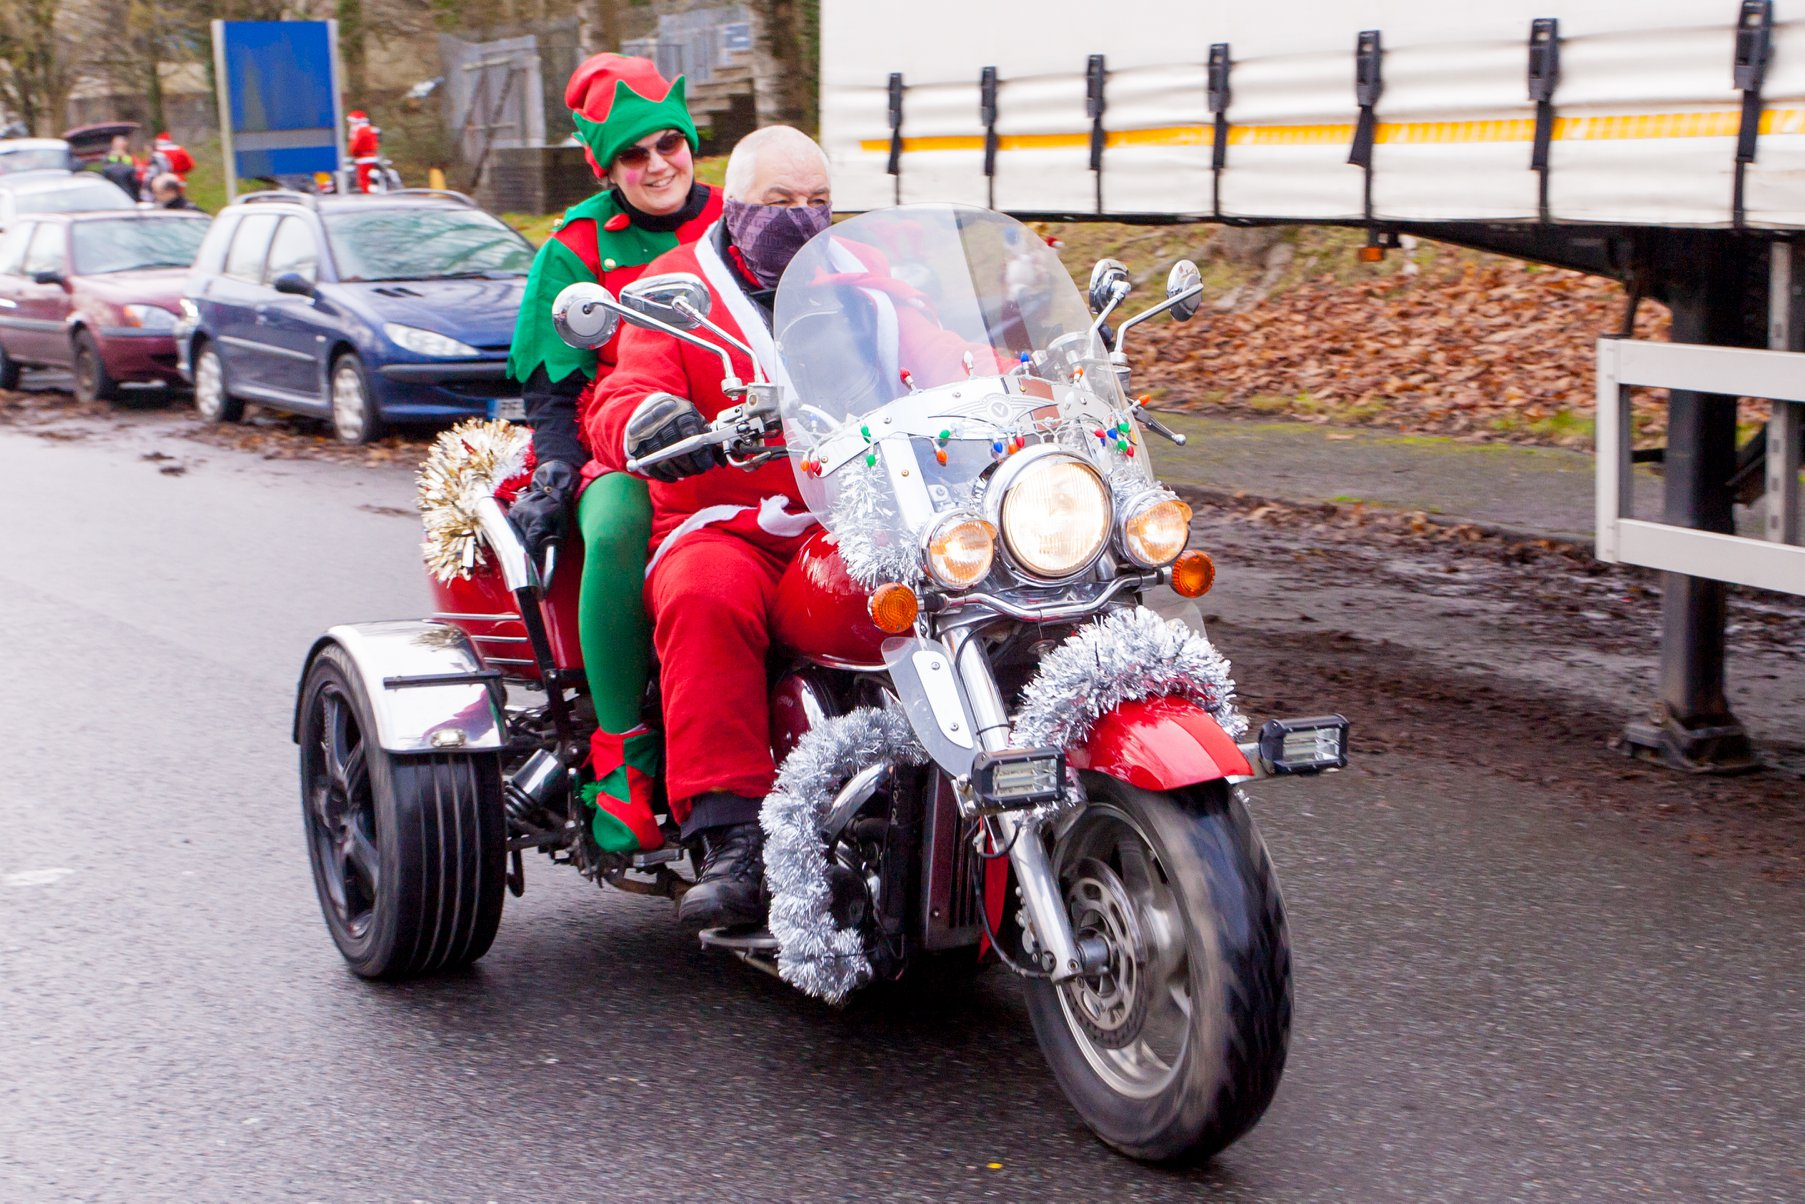 Santas on a Bike will be a little different this year but keep an eye out between 4 - 6 December